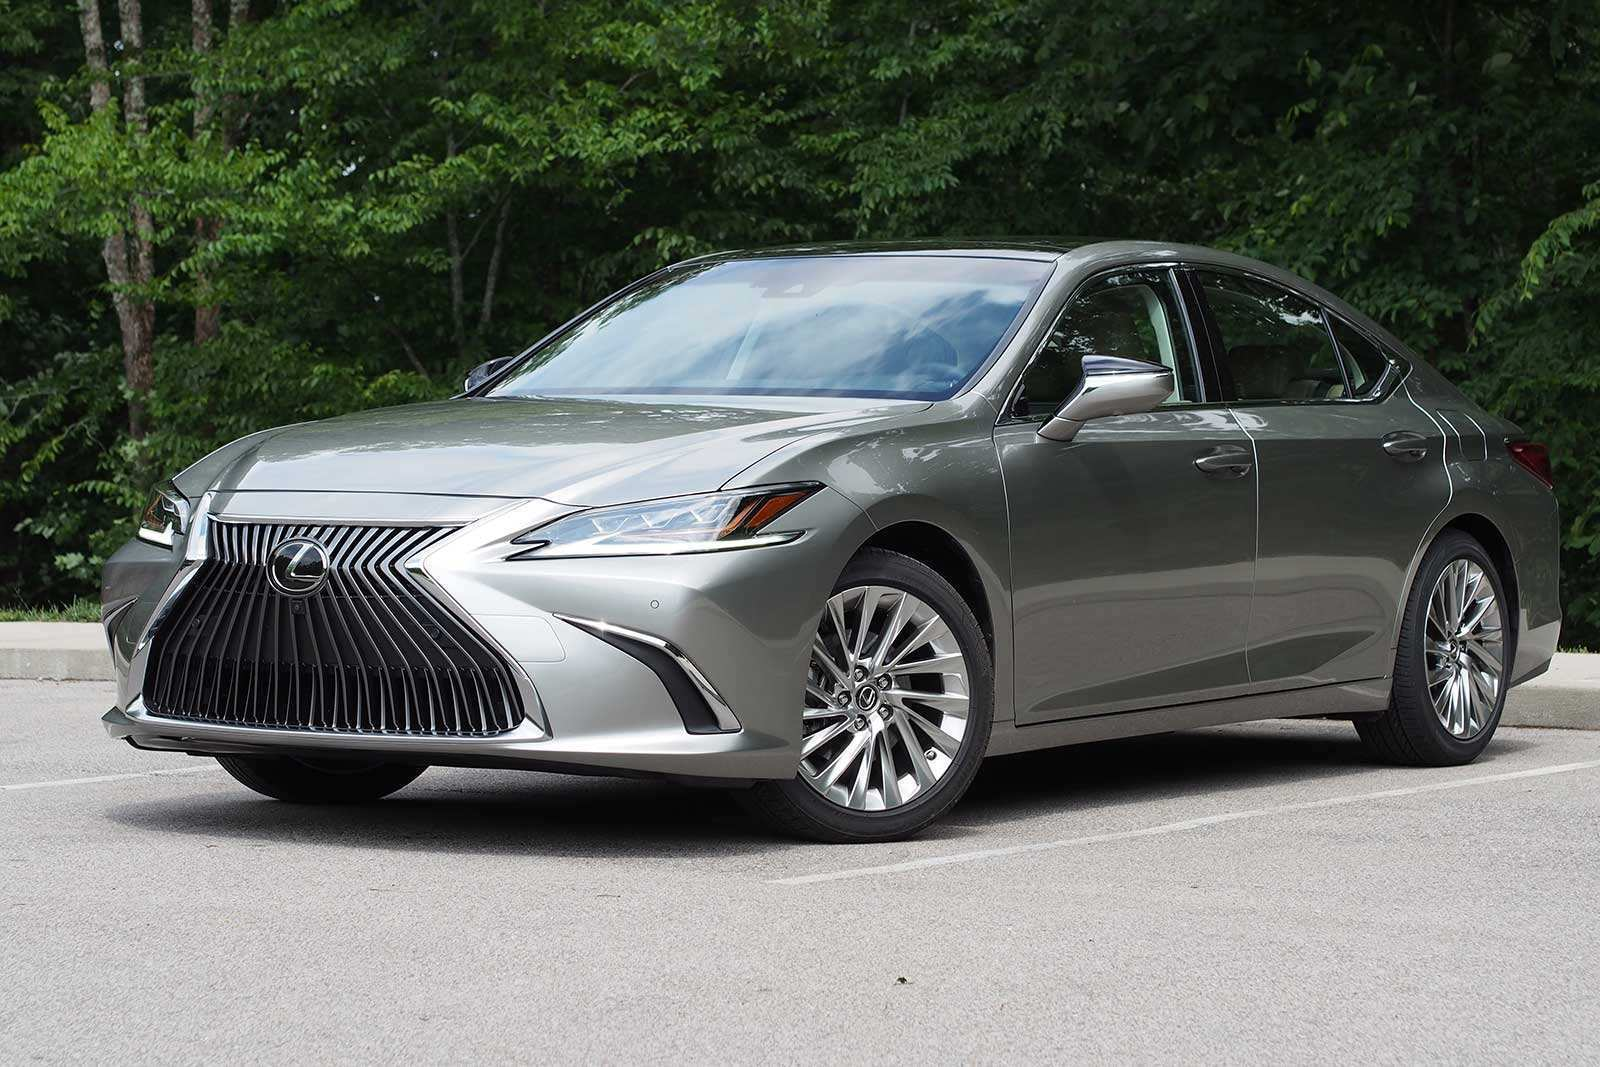 12 Best Review 2019 Lexus Es Review Exterior for 2019 Lexus Es Review